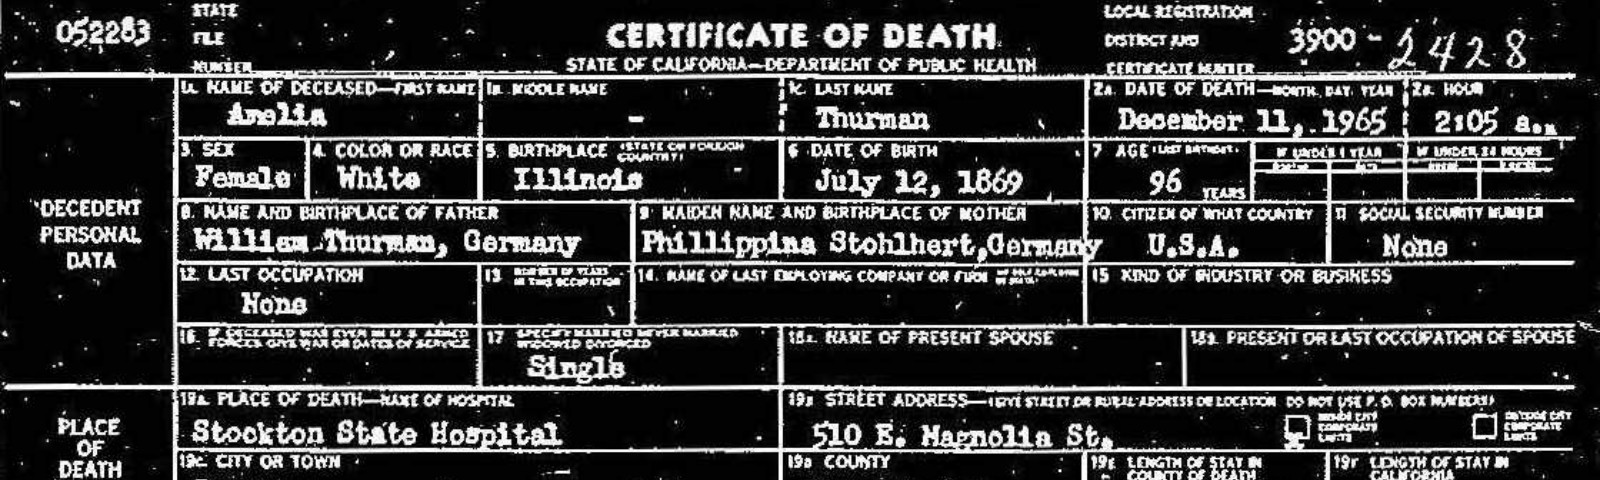 """The death certificate for Amelia Thurnau with her surname misidentified as """"Thurman."""""""